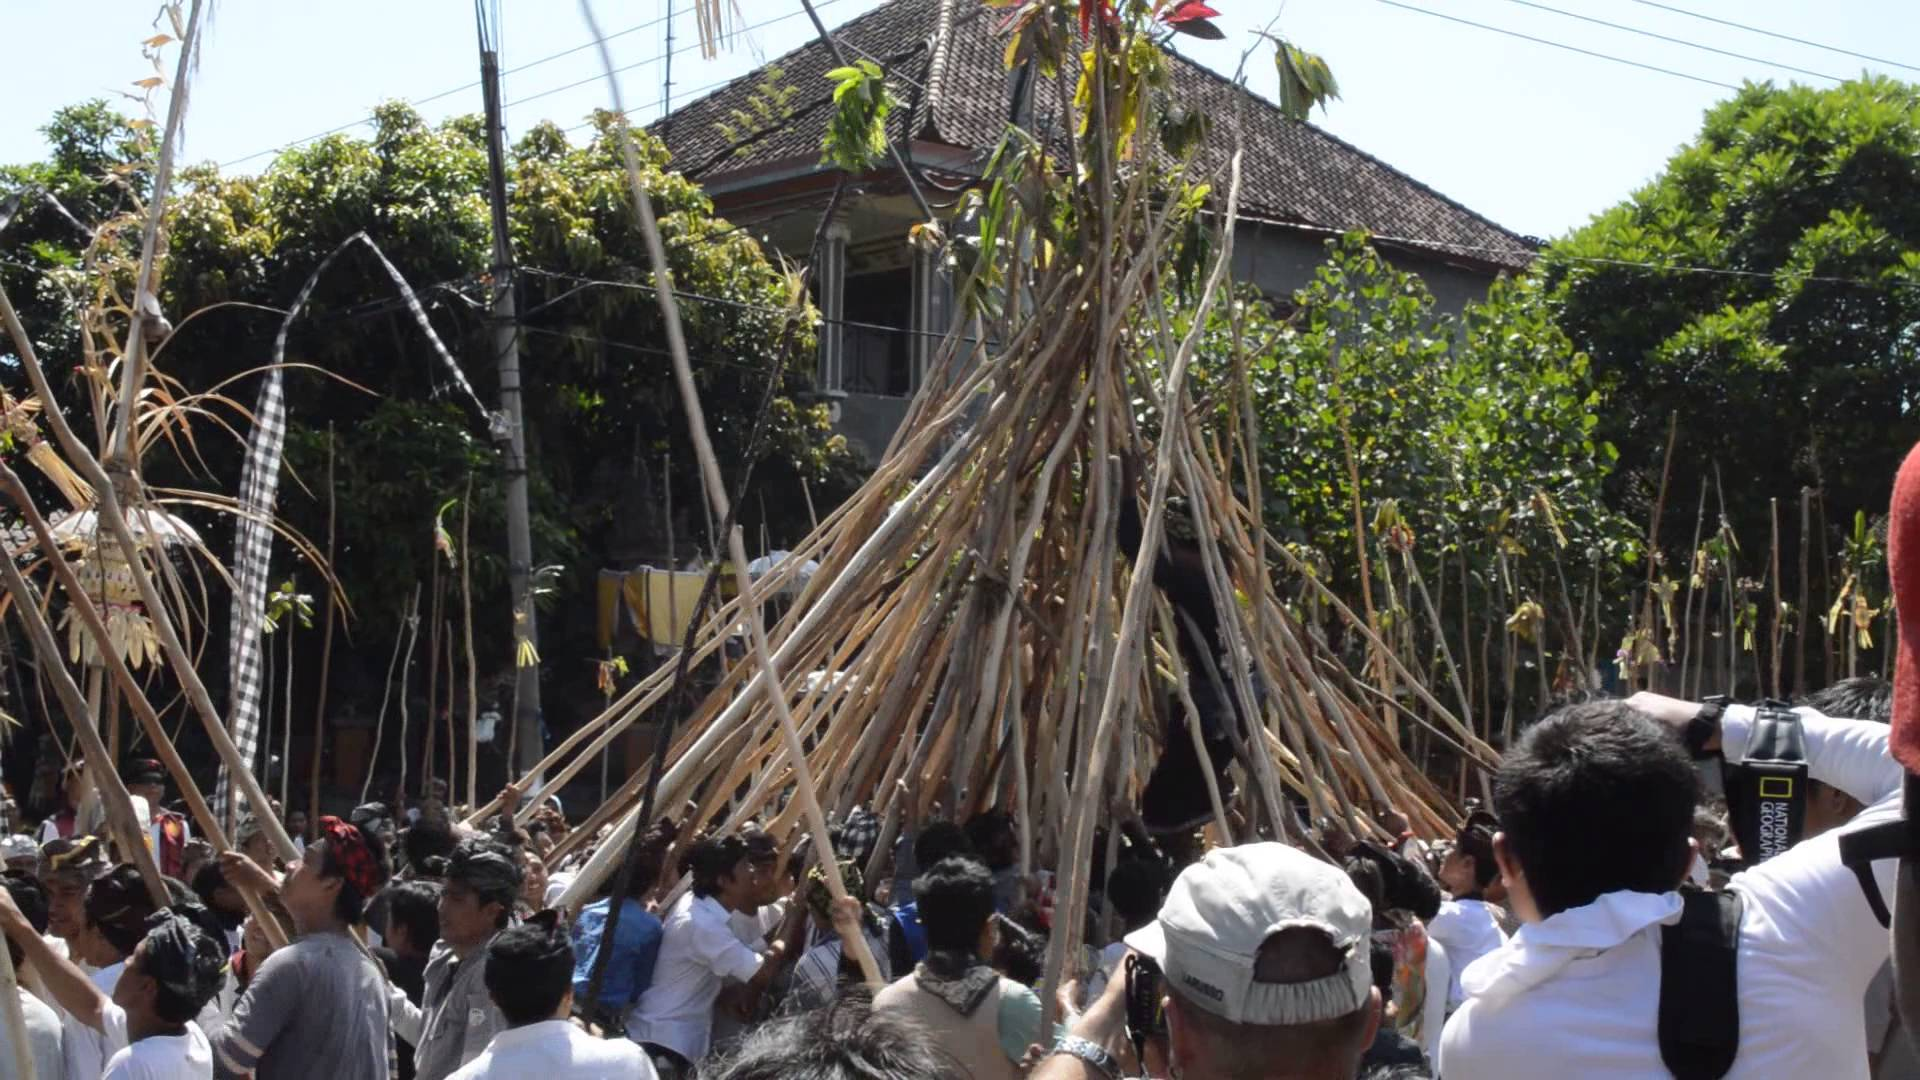 Another one of the several sacred ceremonies held around the Kuningan holiday is Makotekan. It takes